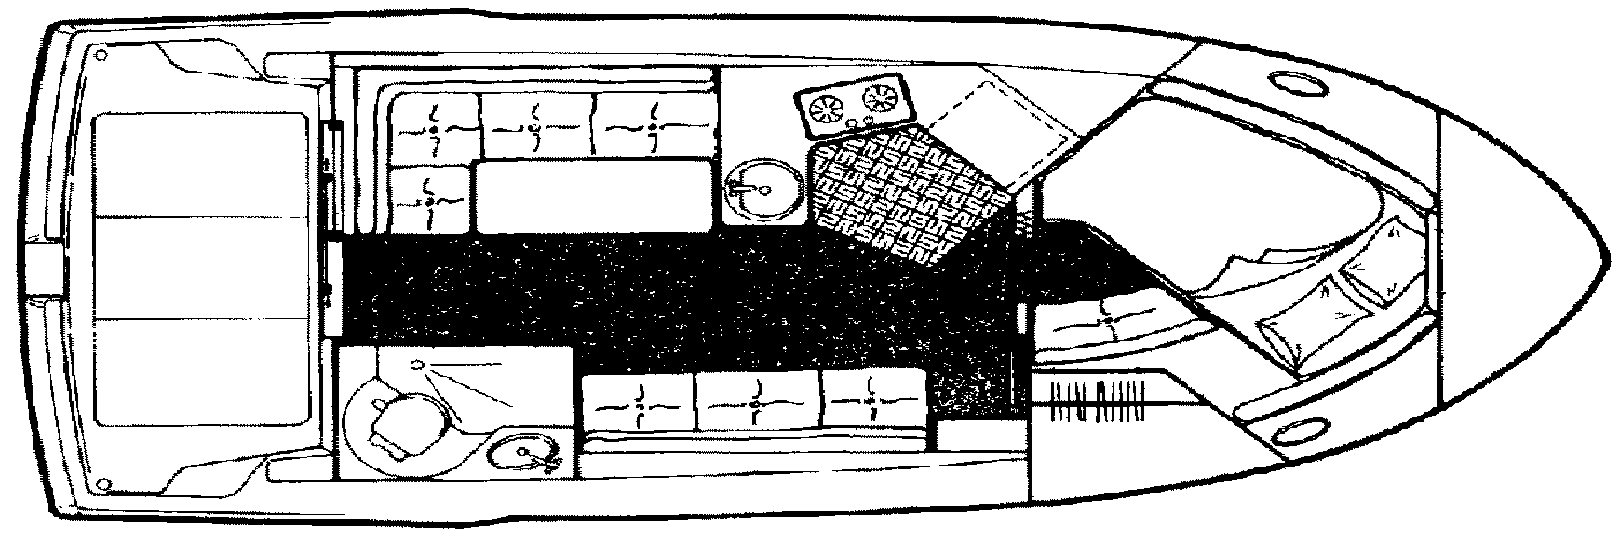 2828 Command Bridge; 300 Sedan Floor Plan 2